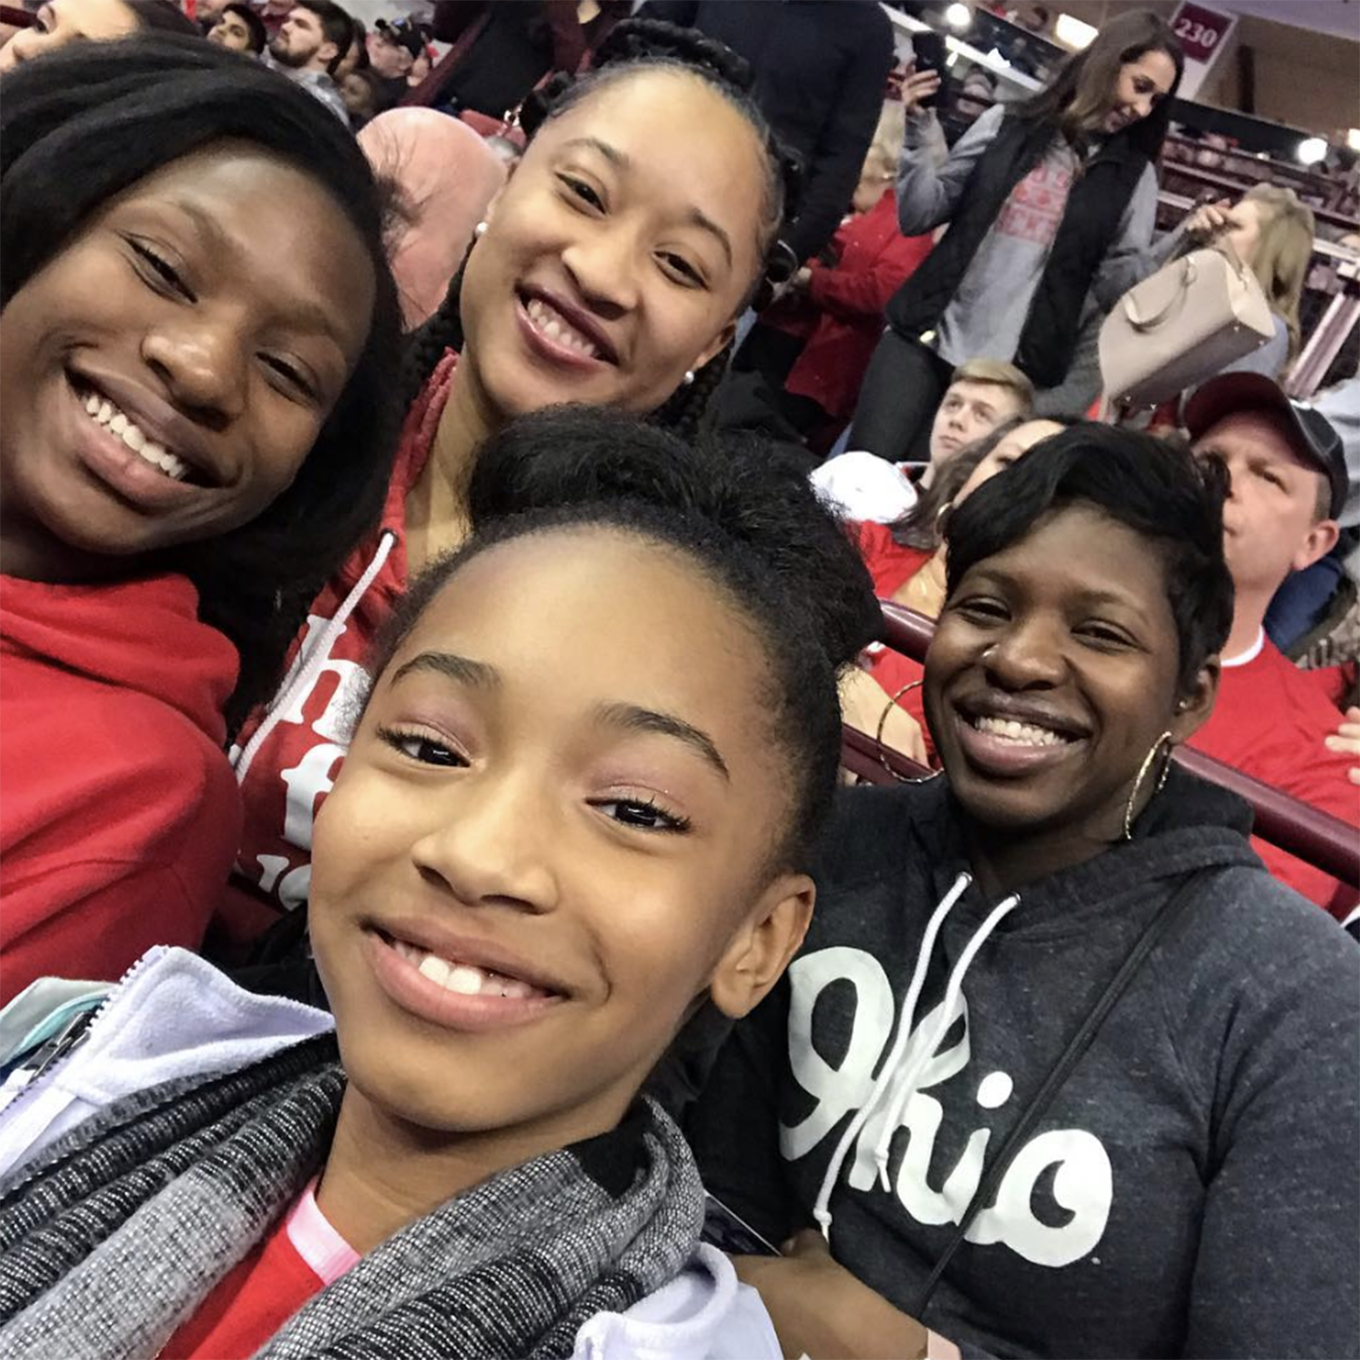 Four young women share a moment during an event at the Schottenstein Center